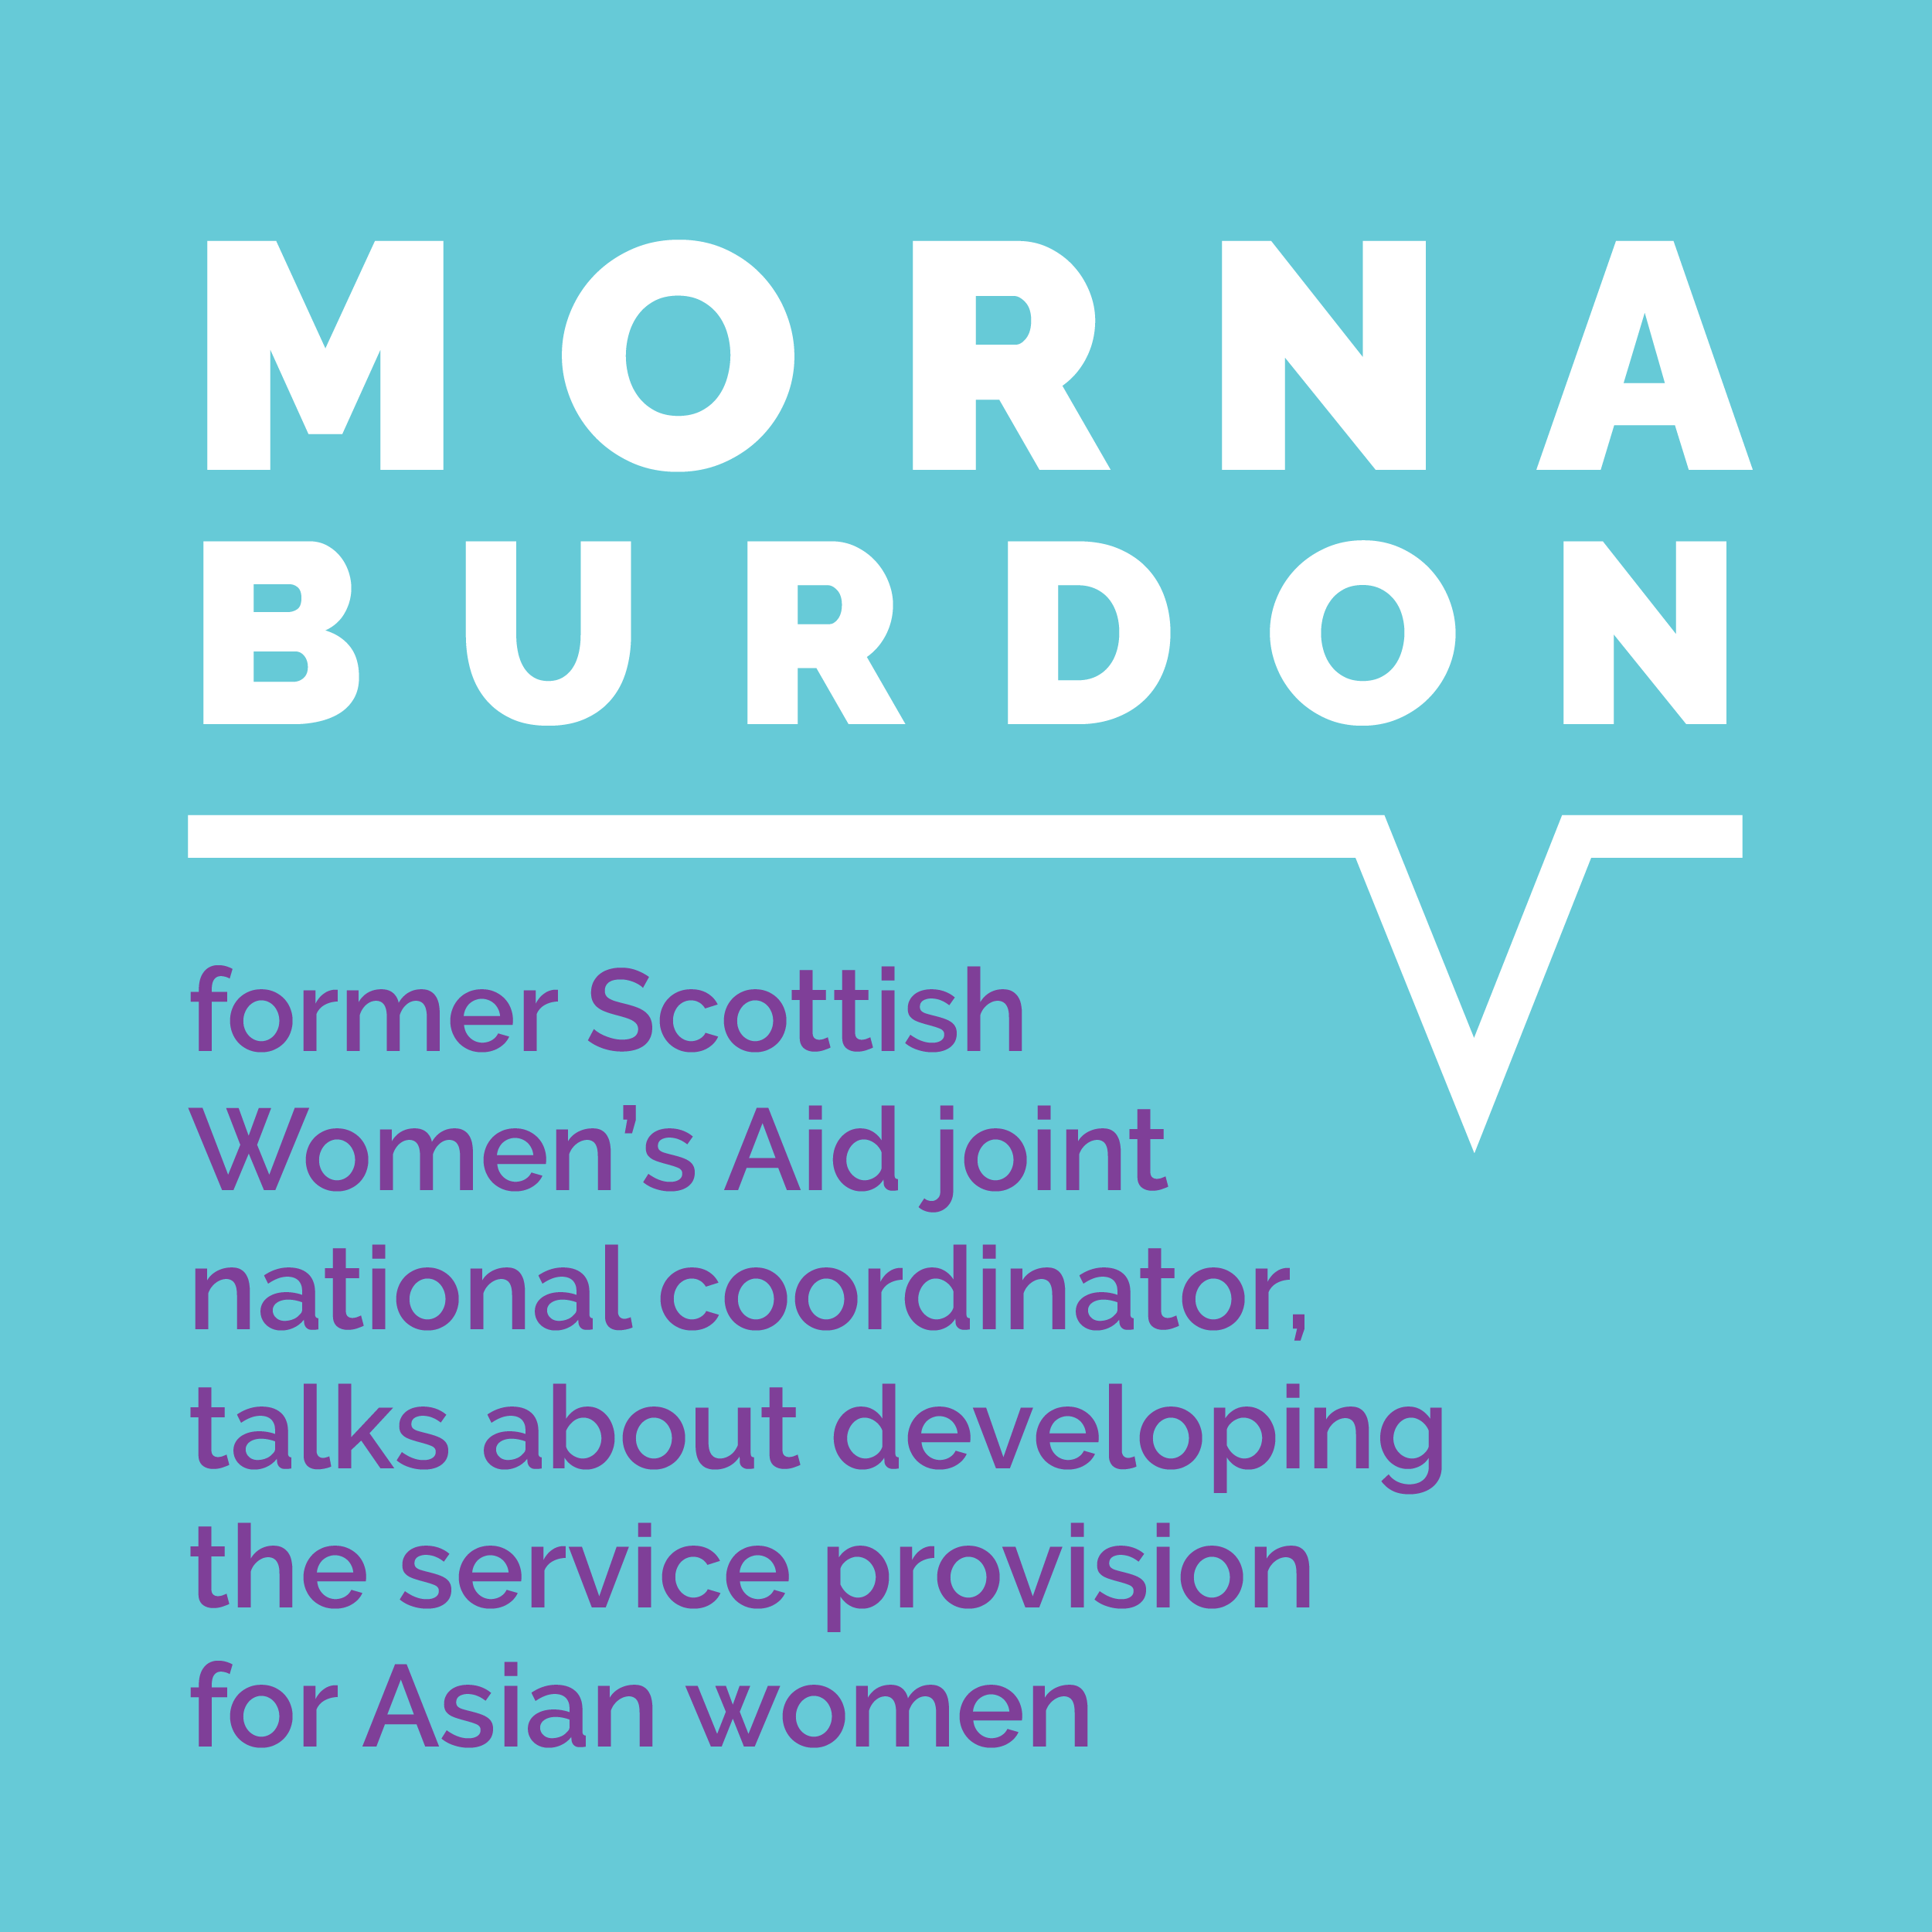 Morna Burdon, former Scottish Women's Aid joint national coordinator, talks about developing the service provision for Asian women